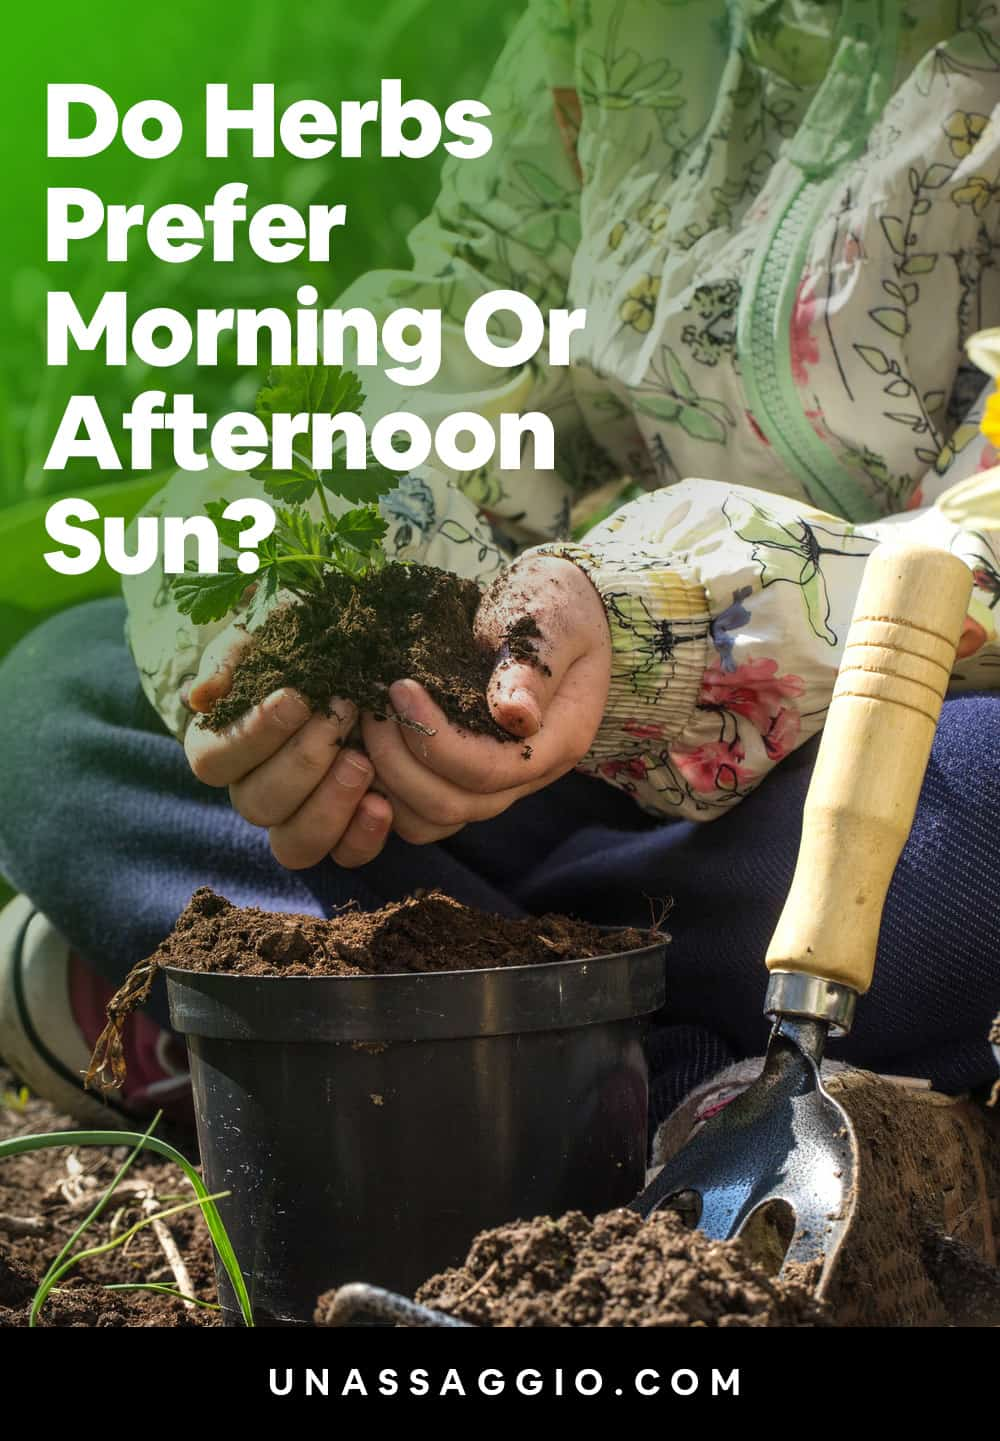 Do Herbs Prefer Morning Or Afternoon Sun?